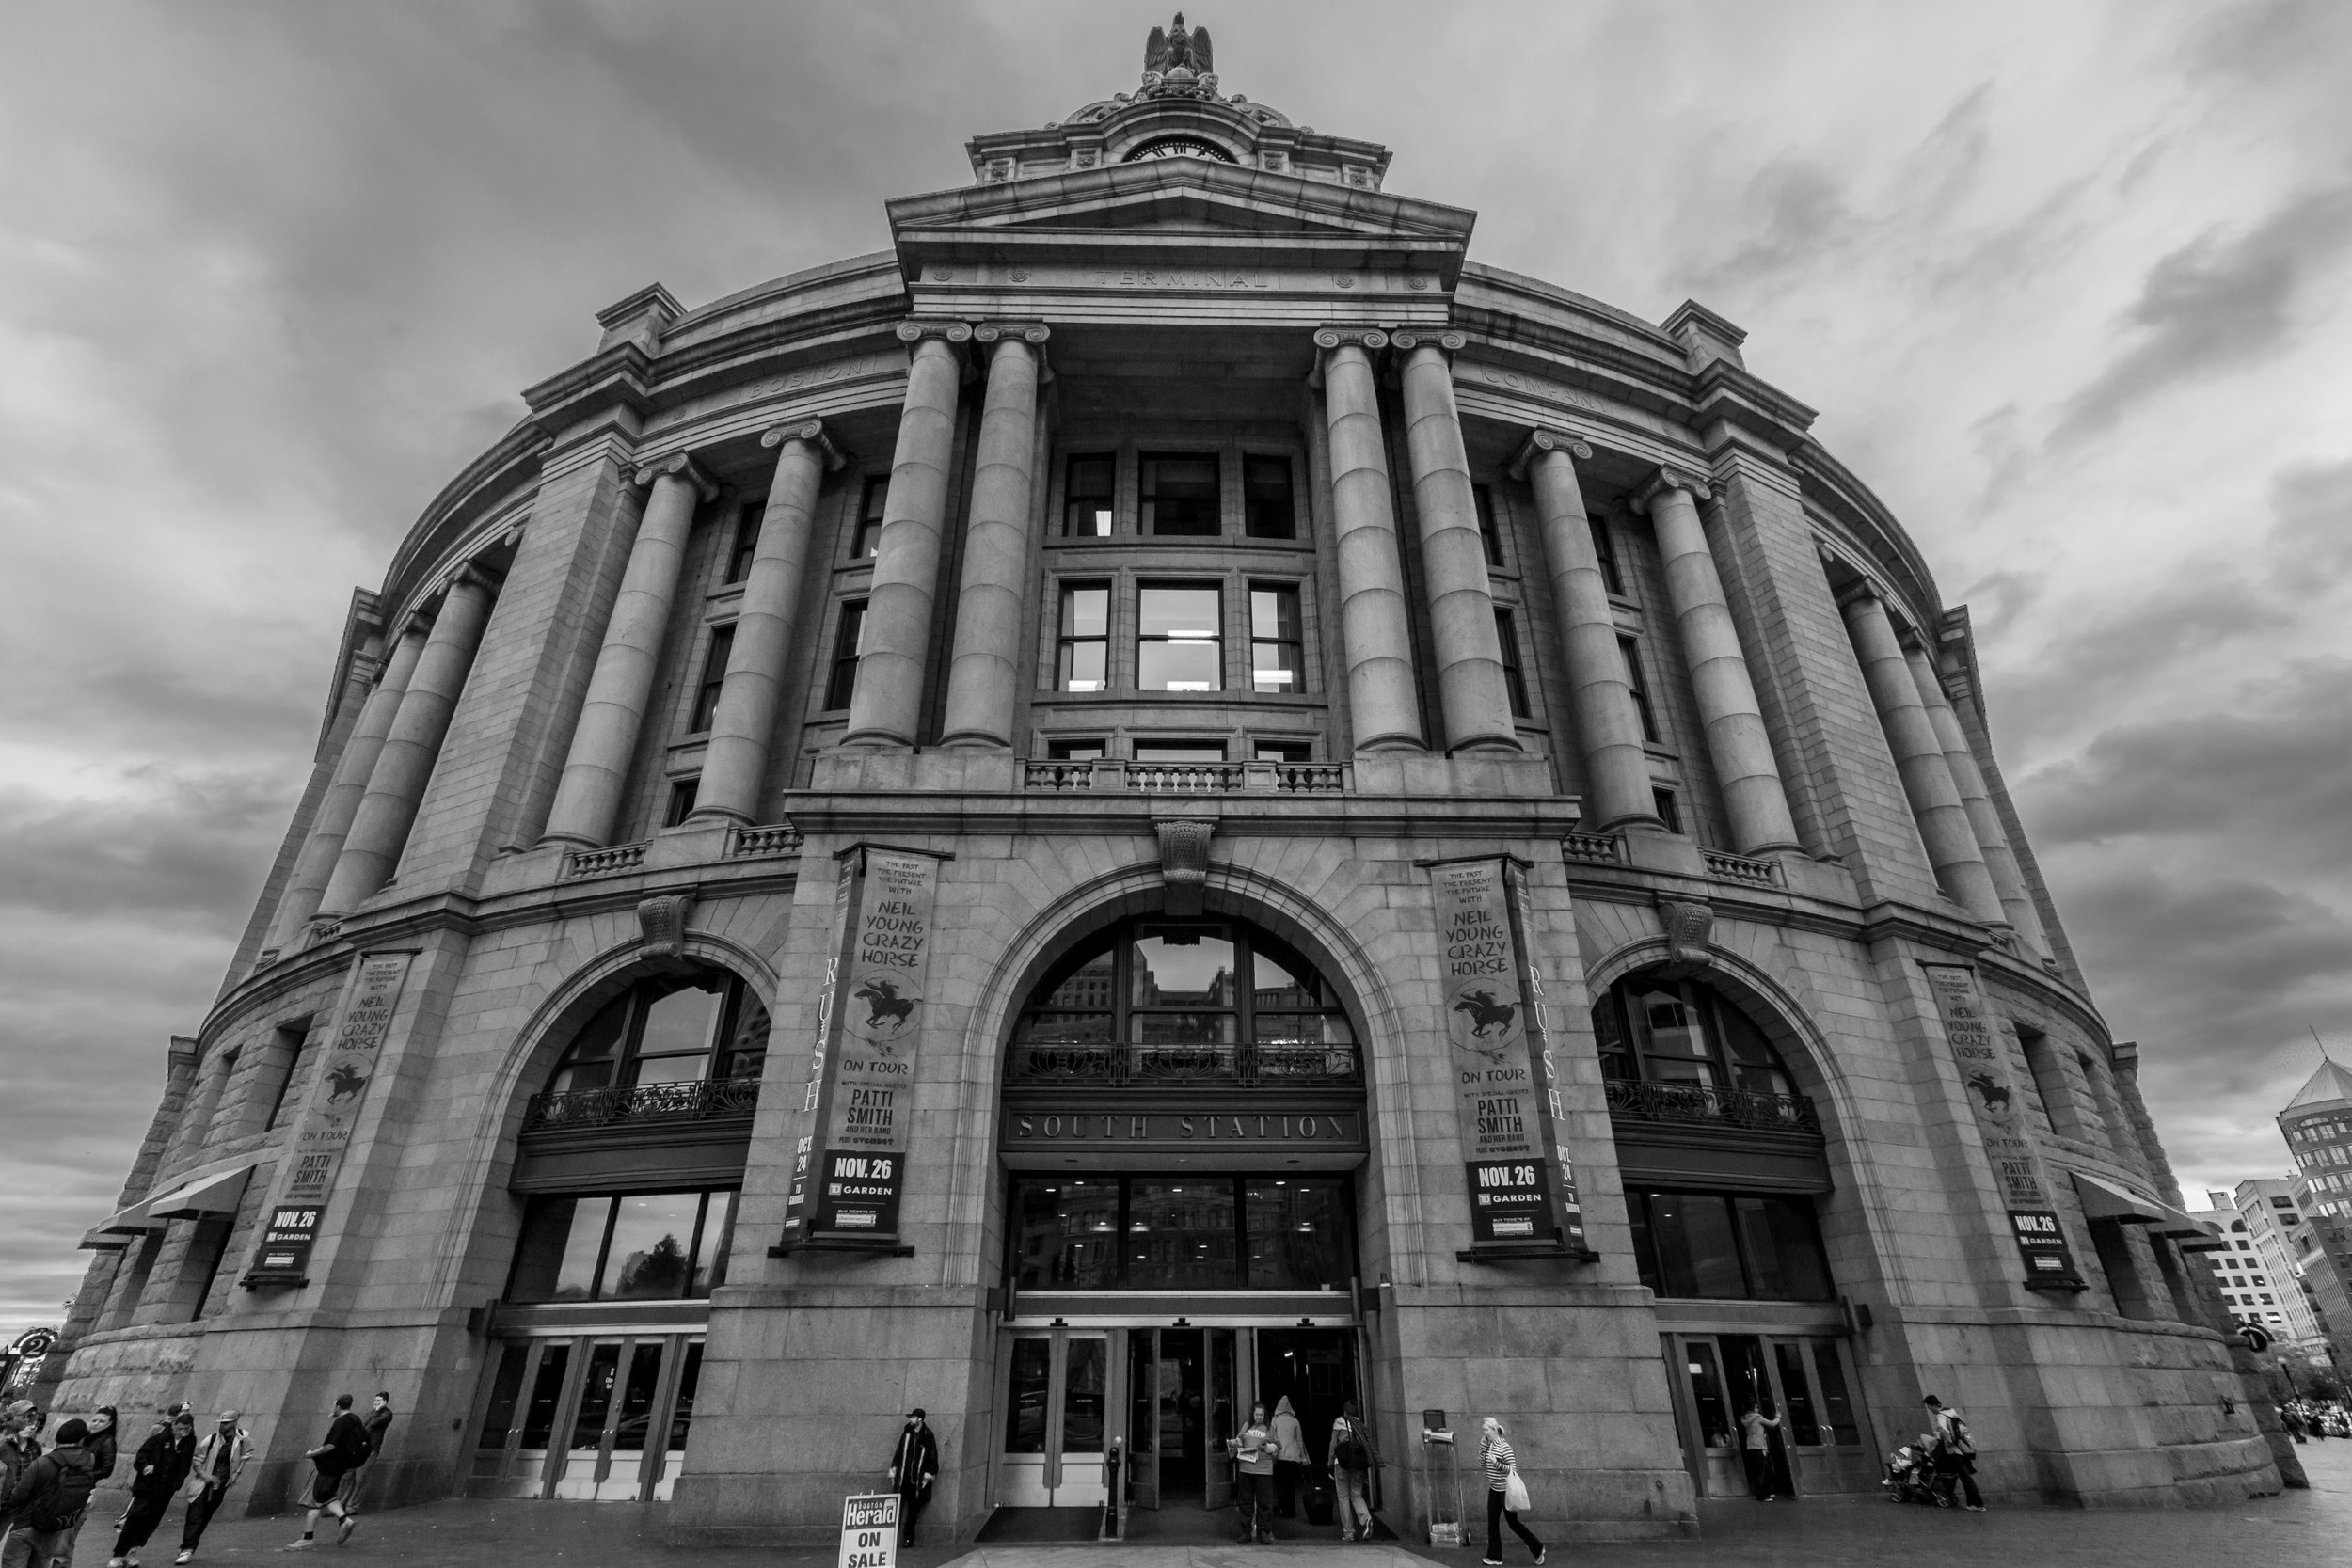 """A wide-angle lens with a short focal length is better suited to shrink a close-up portrait image such as the picture above depicting the south station is Boston. Image Credit: """" South Station, Boston [275/366] """" by  Tim Sackton  is licensed under  CC BY 2.0 ."""